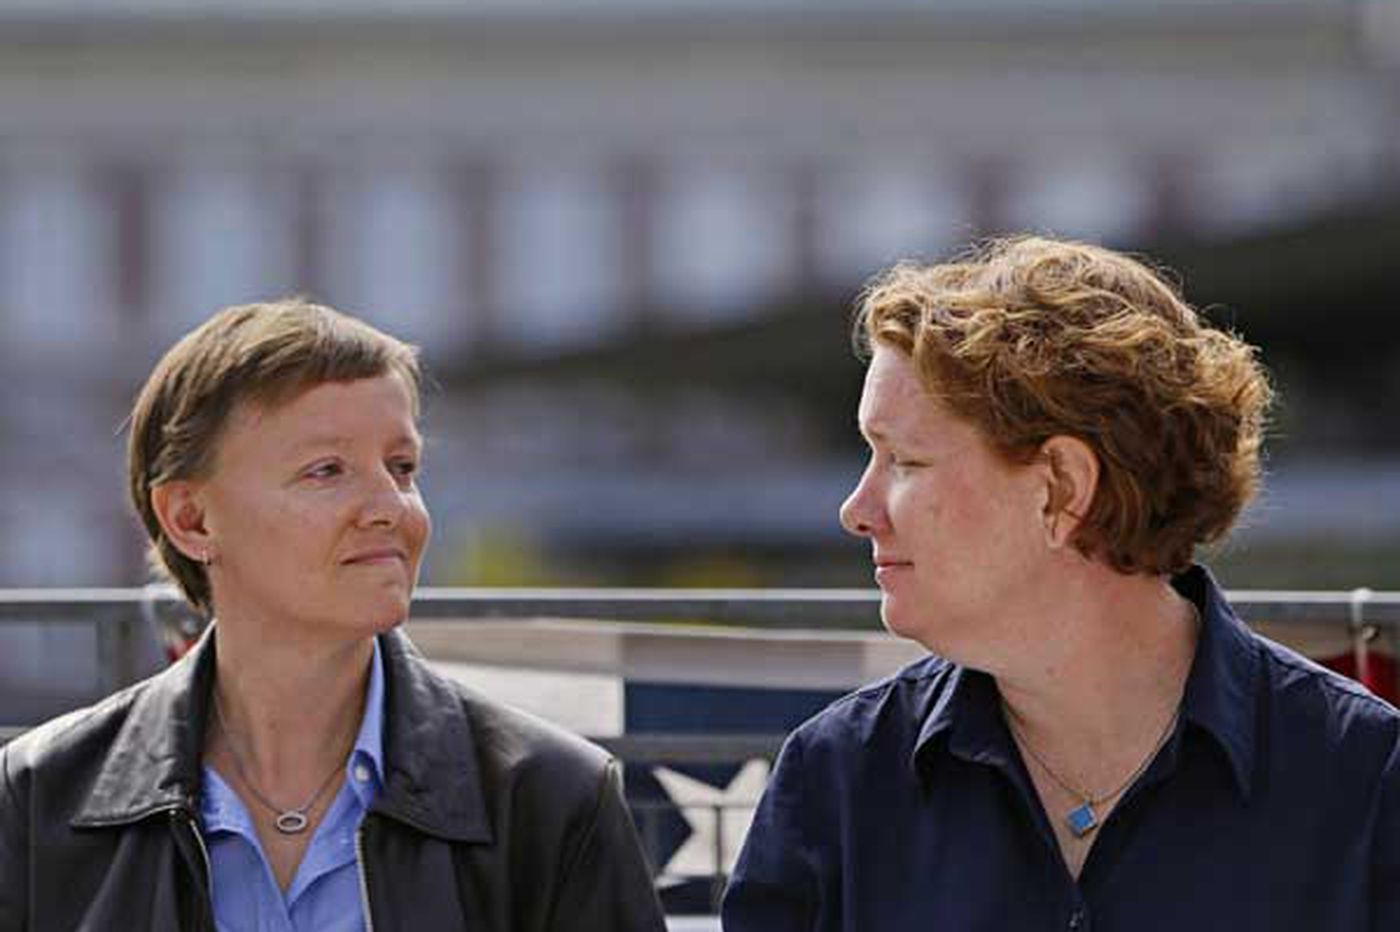 Pa. same-sex marriage suit headed to federal court